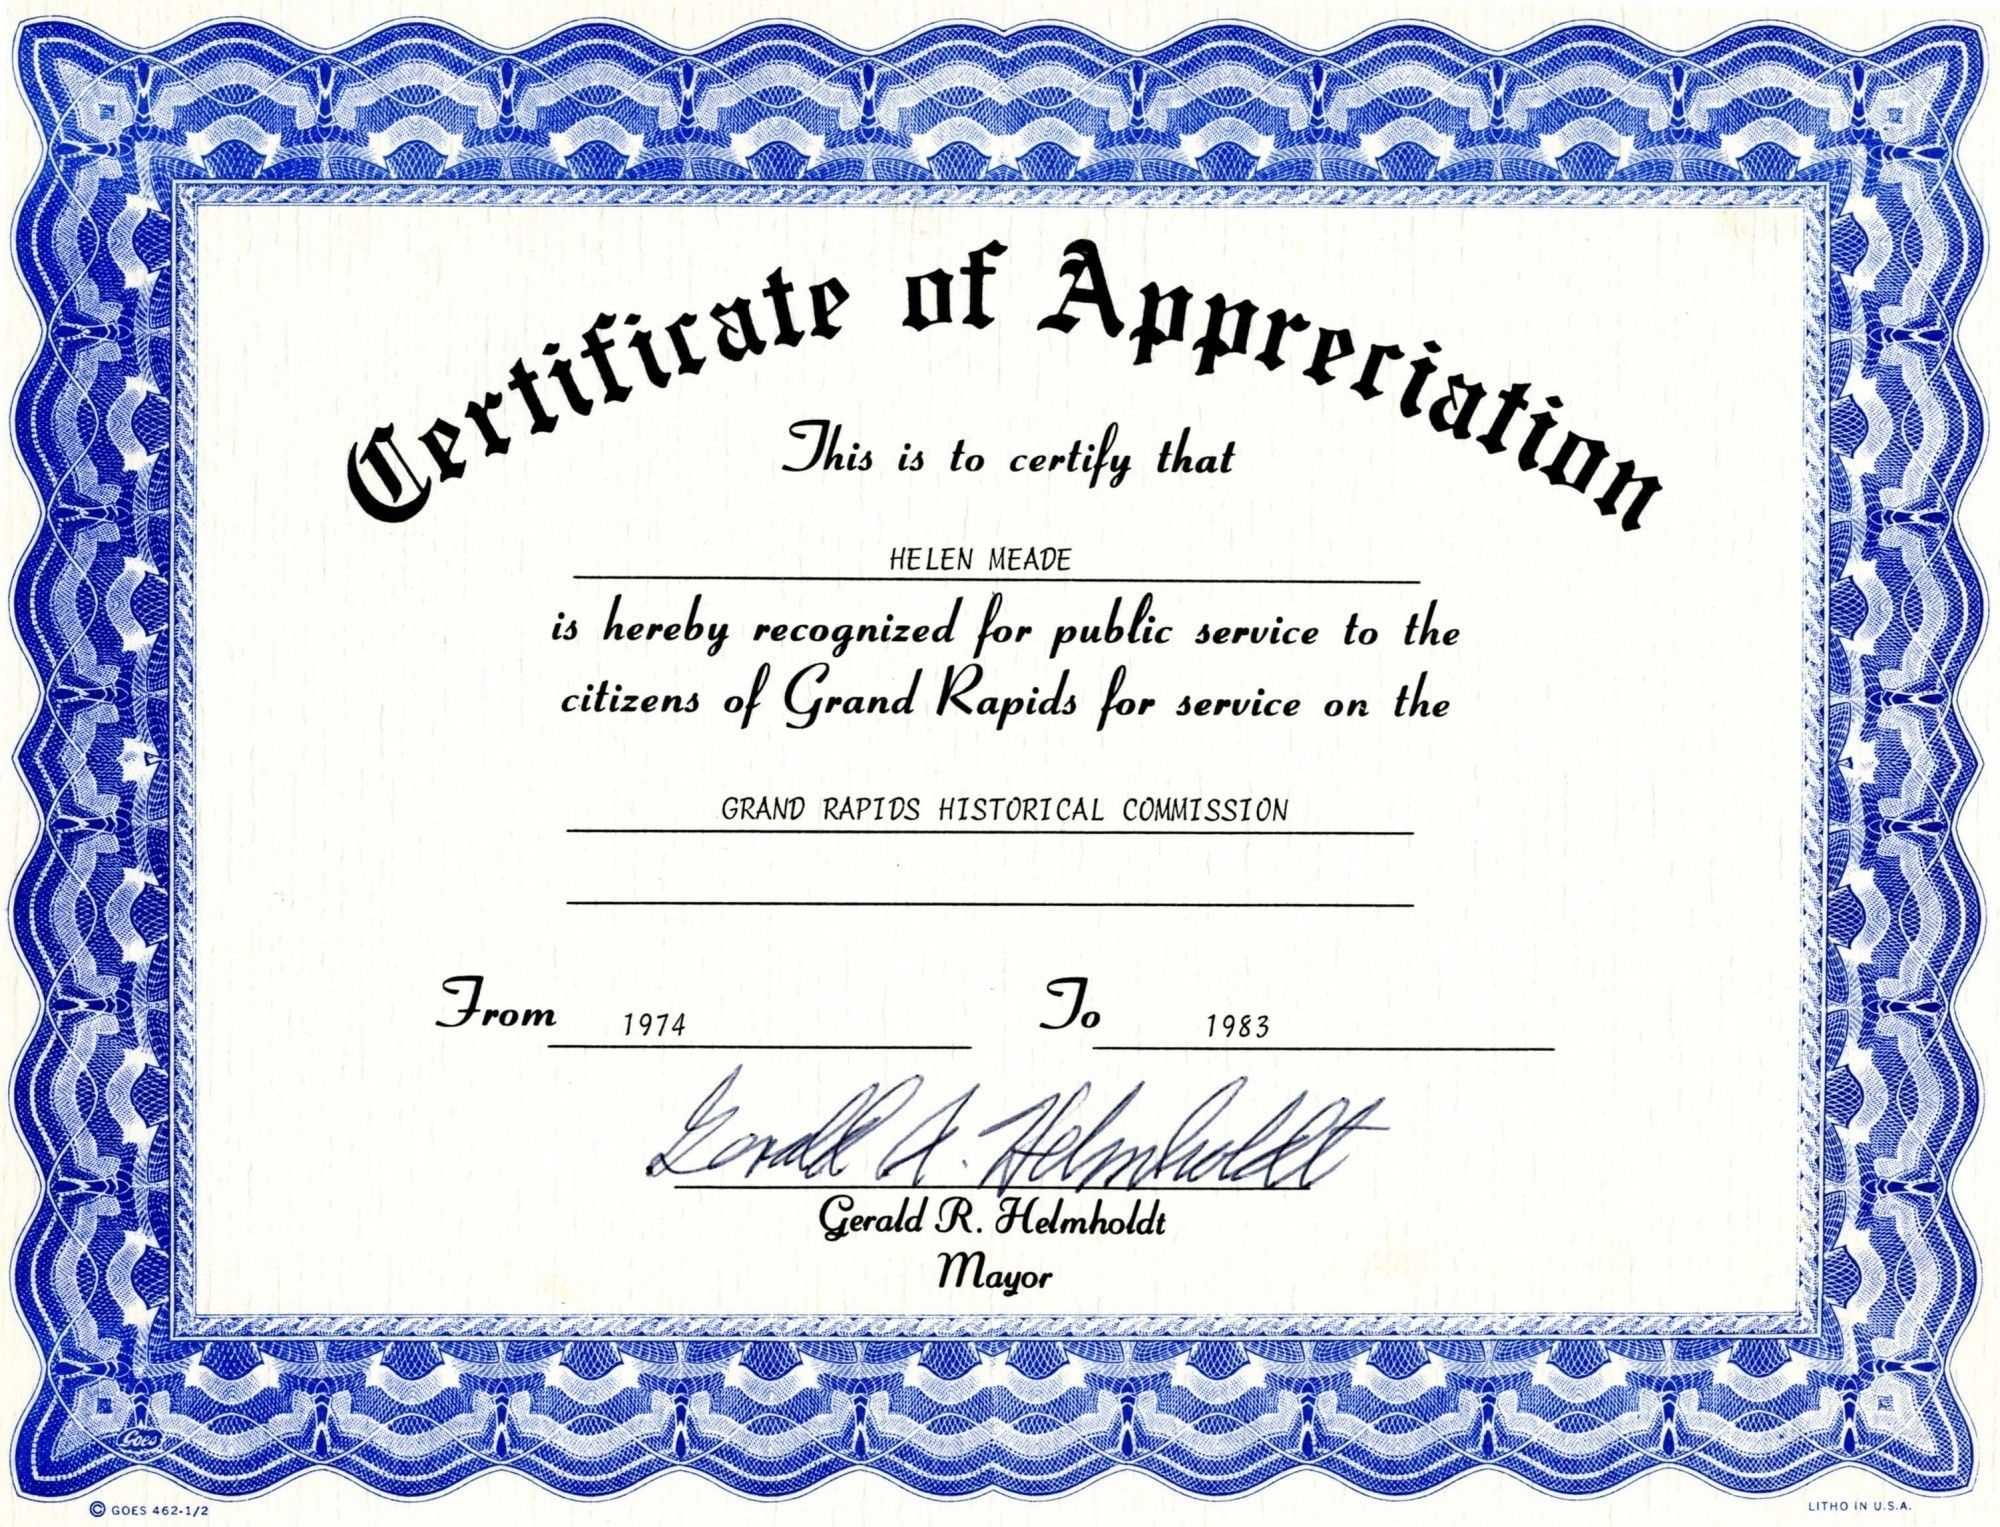 004 Certificates Of Appreciation Templates Template Awesome With Regard To Christian Certificate Template